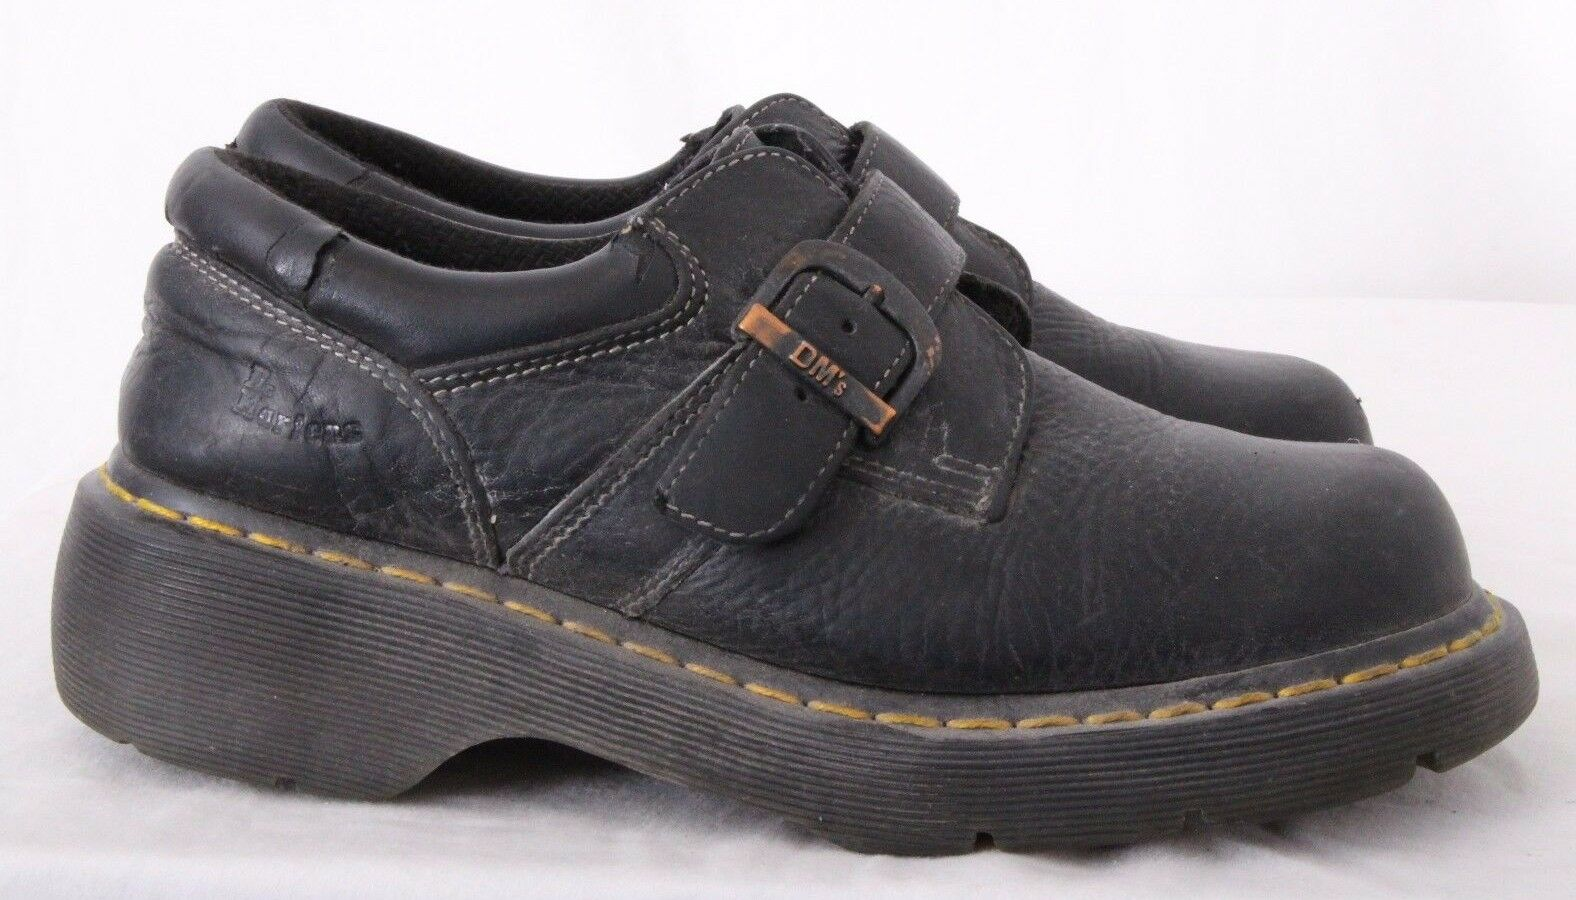 Dr. Martens Doc DM'S 3A78 Buckle Monk Strap Oxford UK 7 Men's US 8 Women's US 9